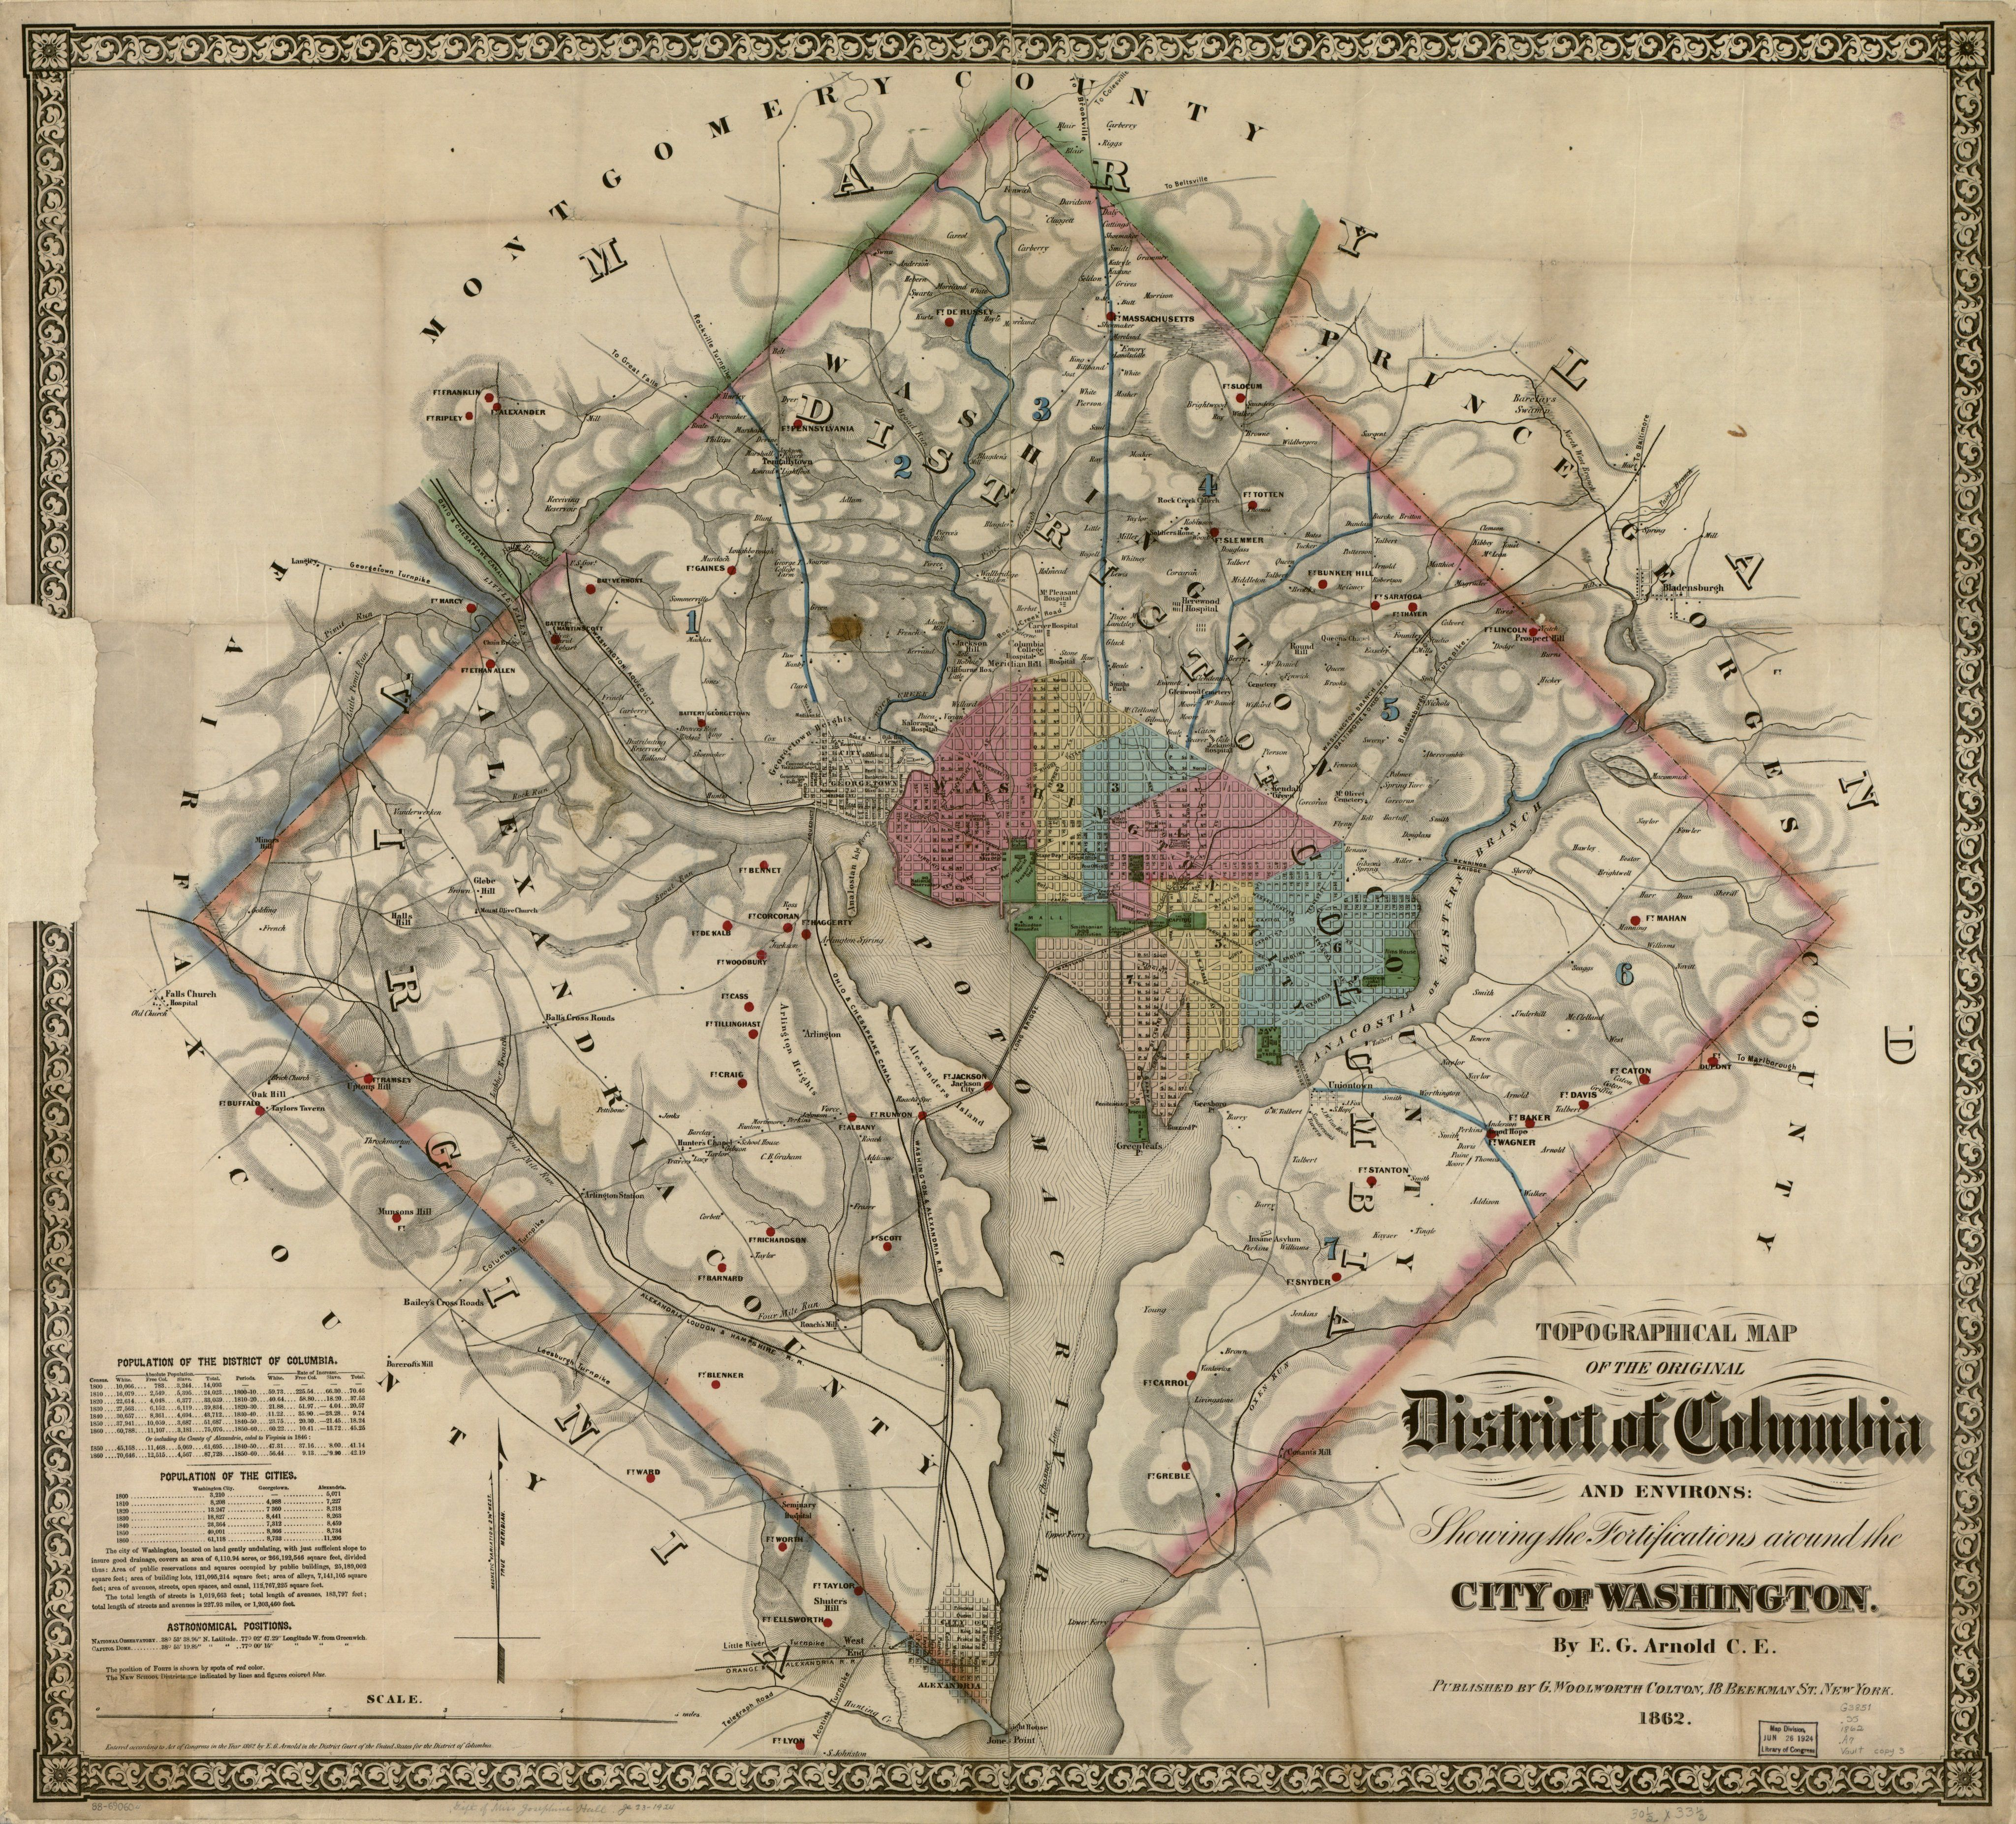 37 maps that explain the American Civil War American civil war and